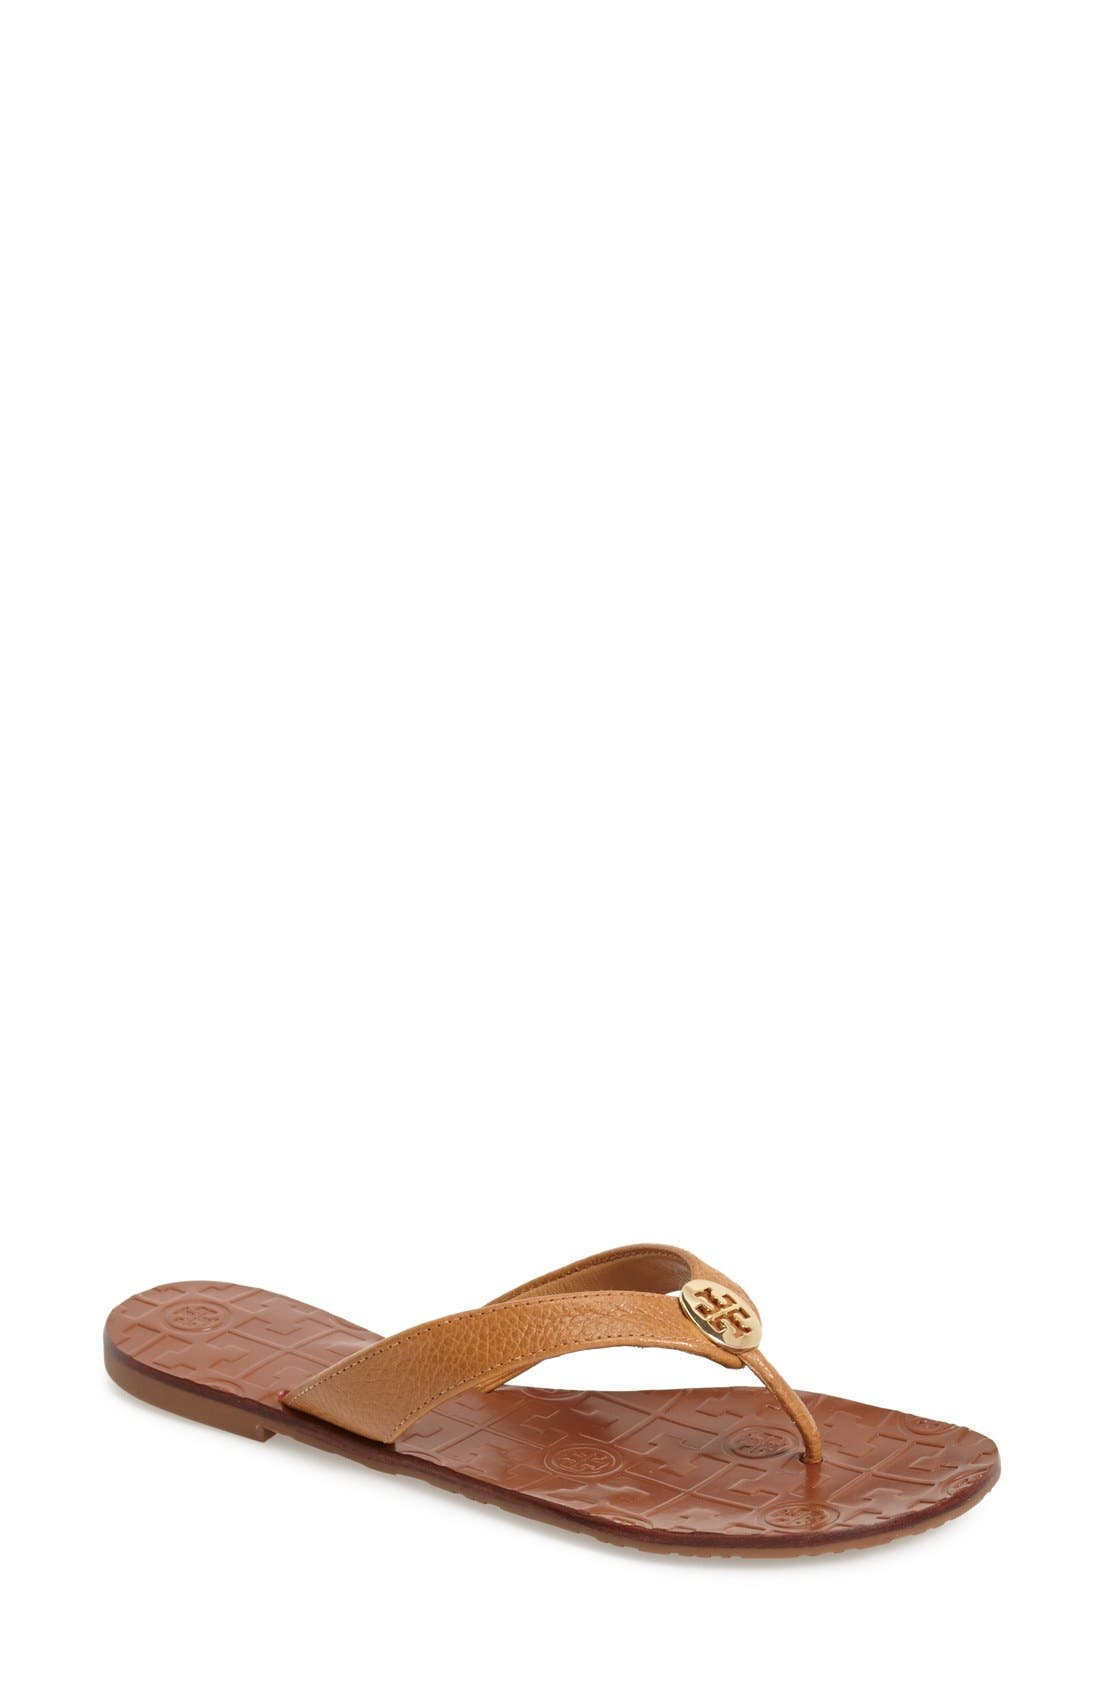 Alternate Image 1 Selected - Tory Burch 'Thora' Flip Flop (Women)